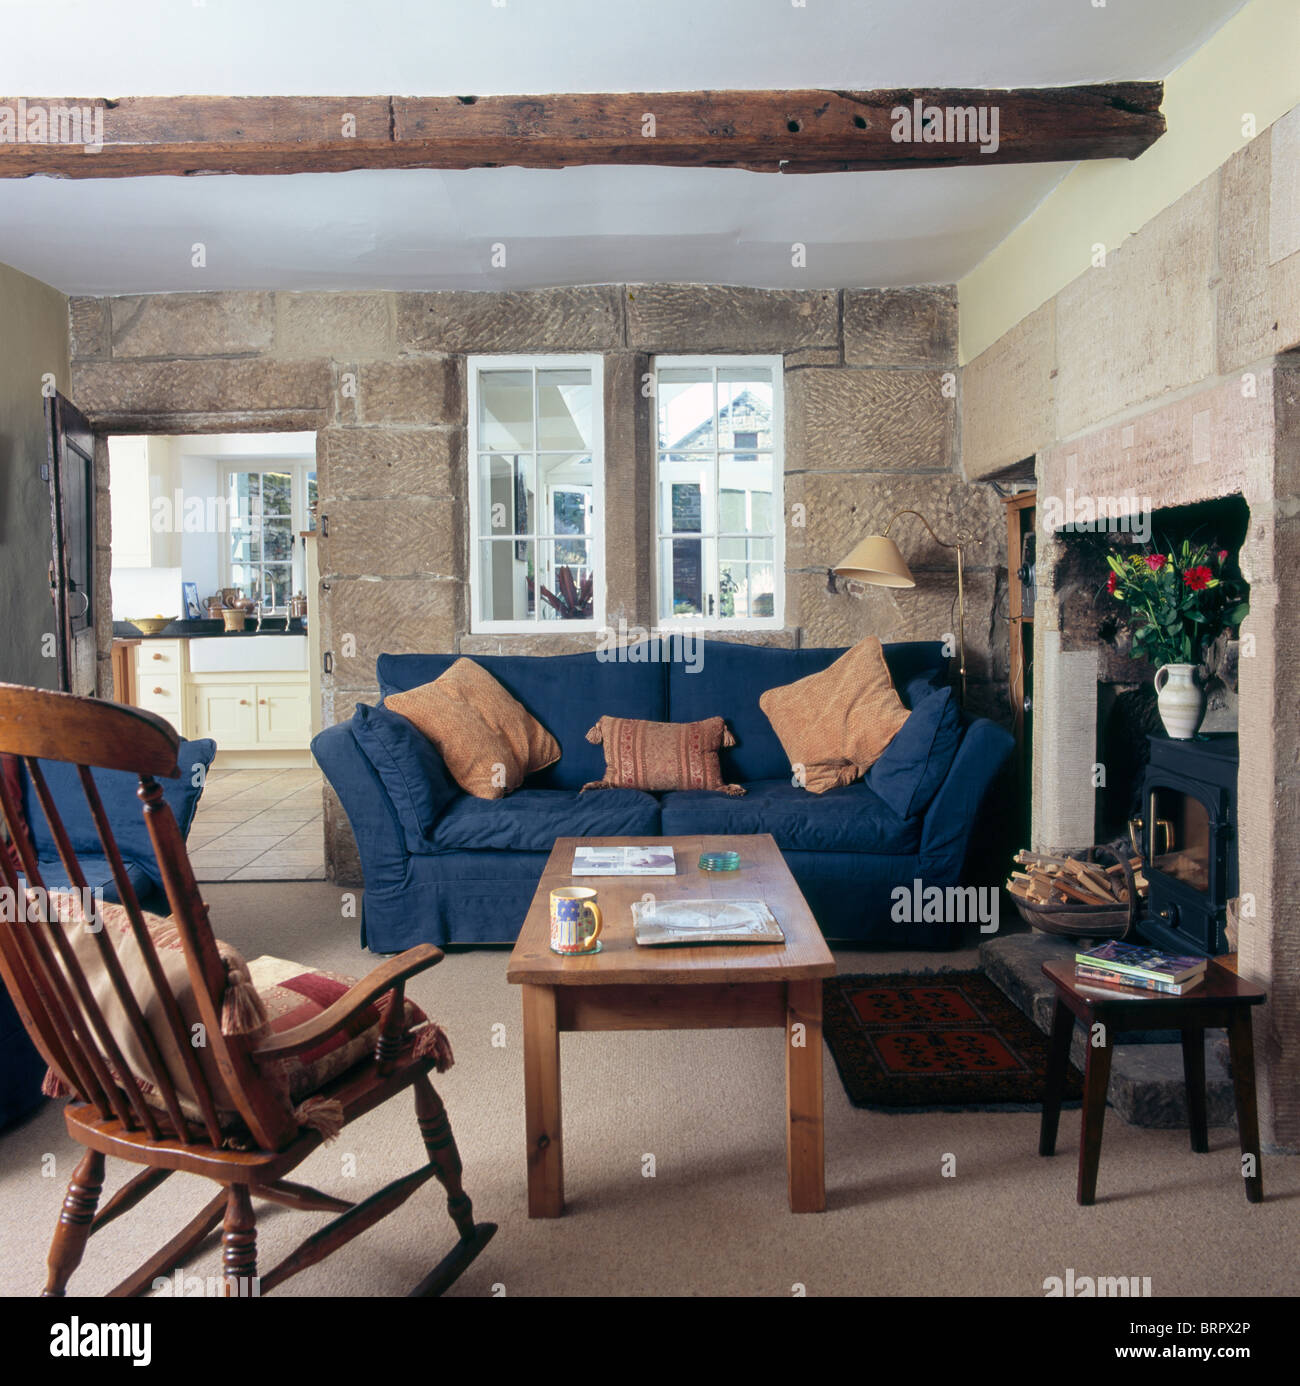 Windsor Chair And Wooden Coffee Table In Cottage Living Room With Blue Sofa  Below Internal Window In Exposed Stone Wall